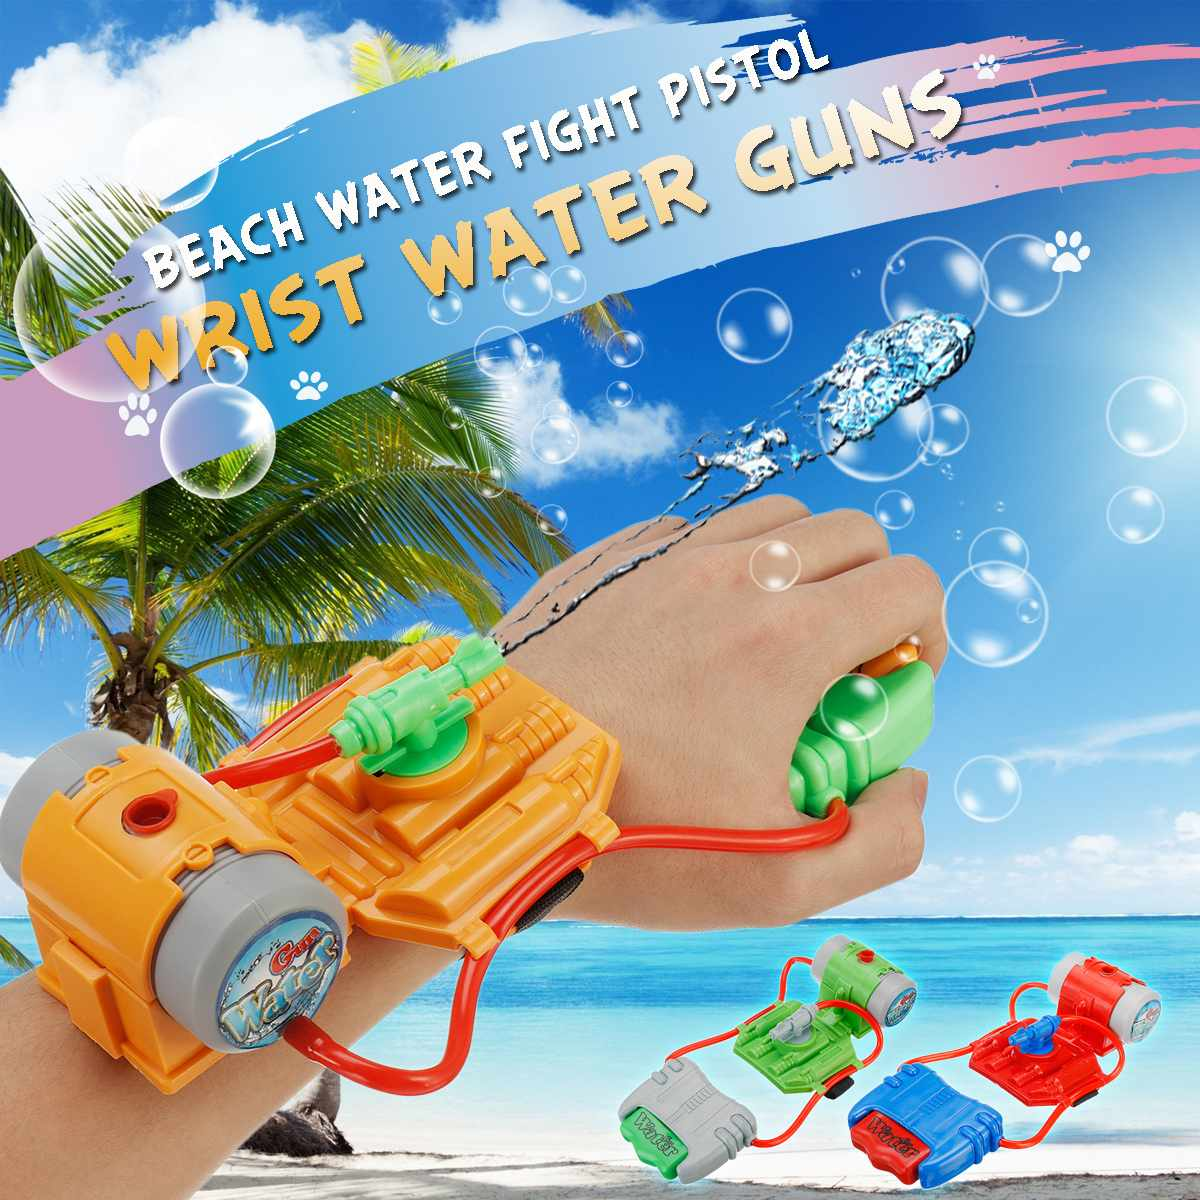 3 Colors 5M Range Wrist Water G un Summer Beach Outdoor <font><b>Shooter</b></font> Toy Plastic Children Favorite Toys Boy Gift image